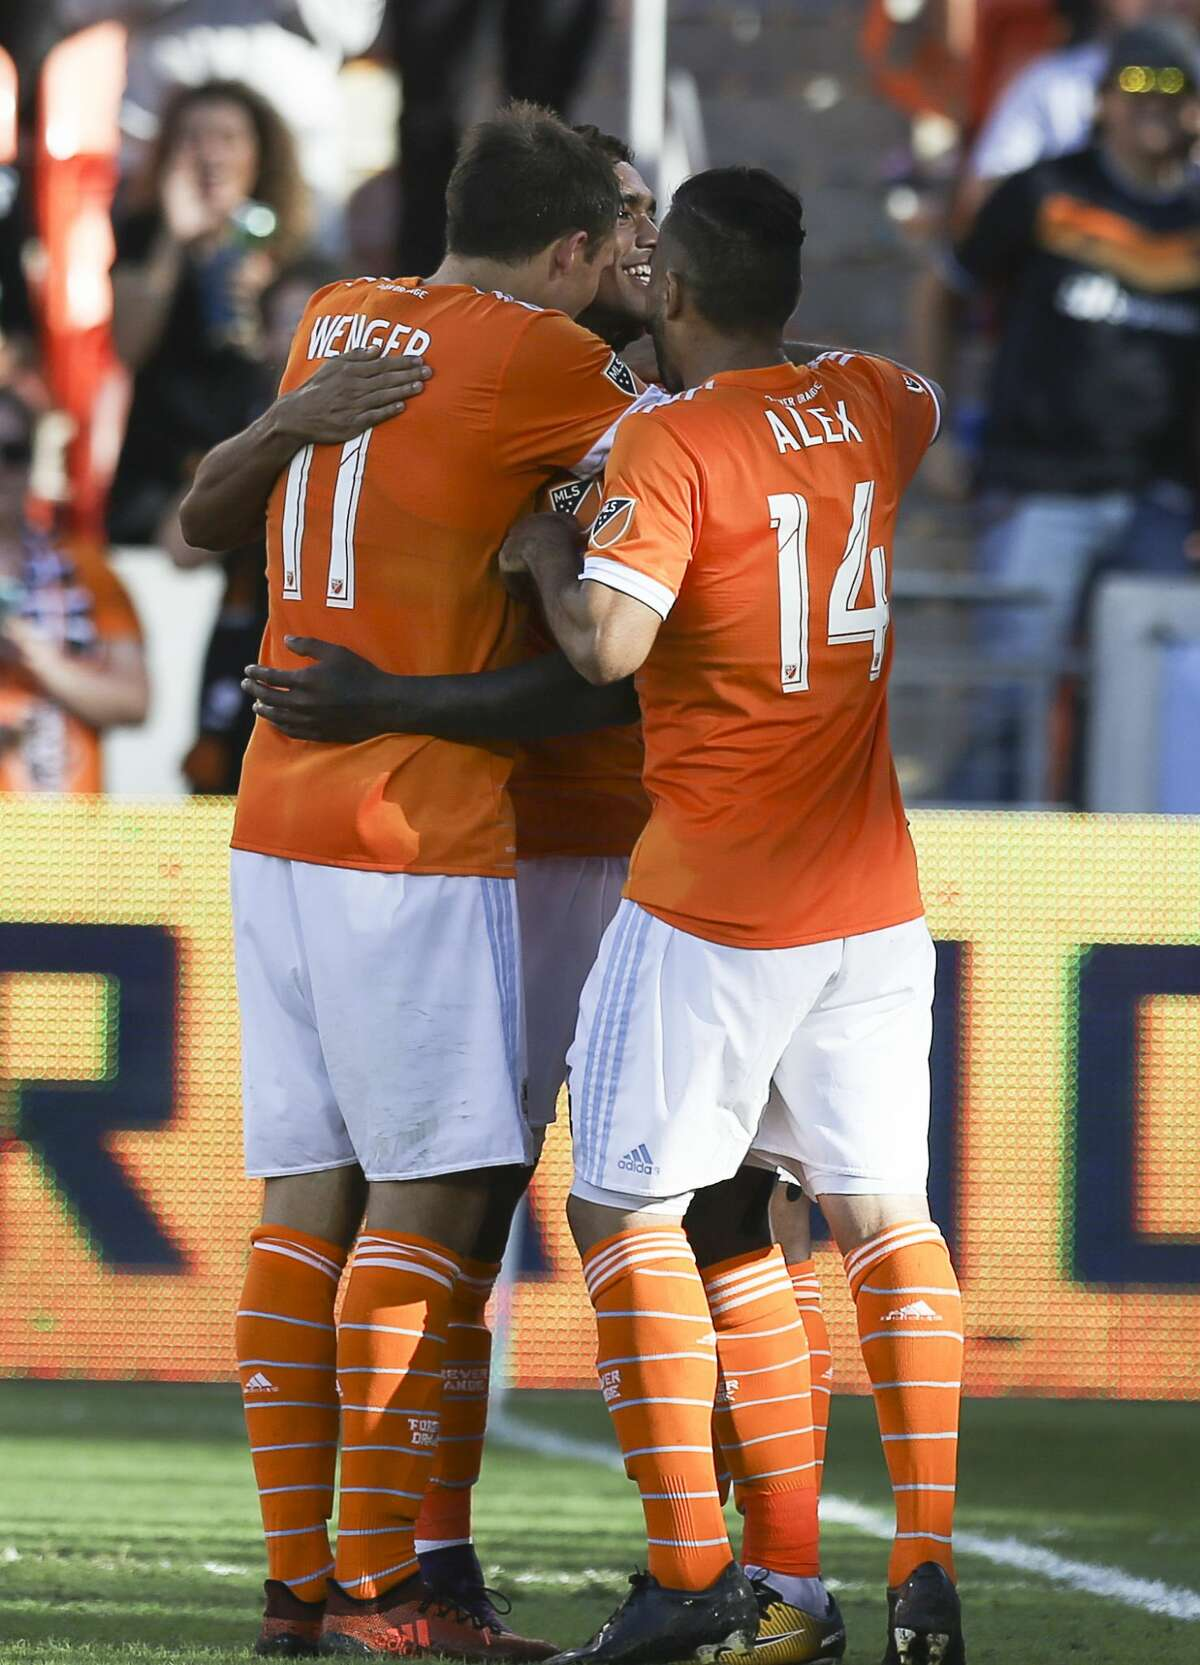 Houston Dynamo players Andrew Wenger (11) and Alex (14) come to celebrate Romell Quioto's (12) goal during the second half of the last MLS regular game at BBVA Compass Stadiujm on Sunday, Oct. 22, 2017, in Houston. The Houston Dynamo defeated the Chicago Fire 3-0. ( Yi-Chin Lee / Houston Chronicle )